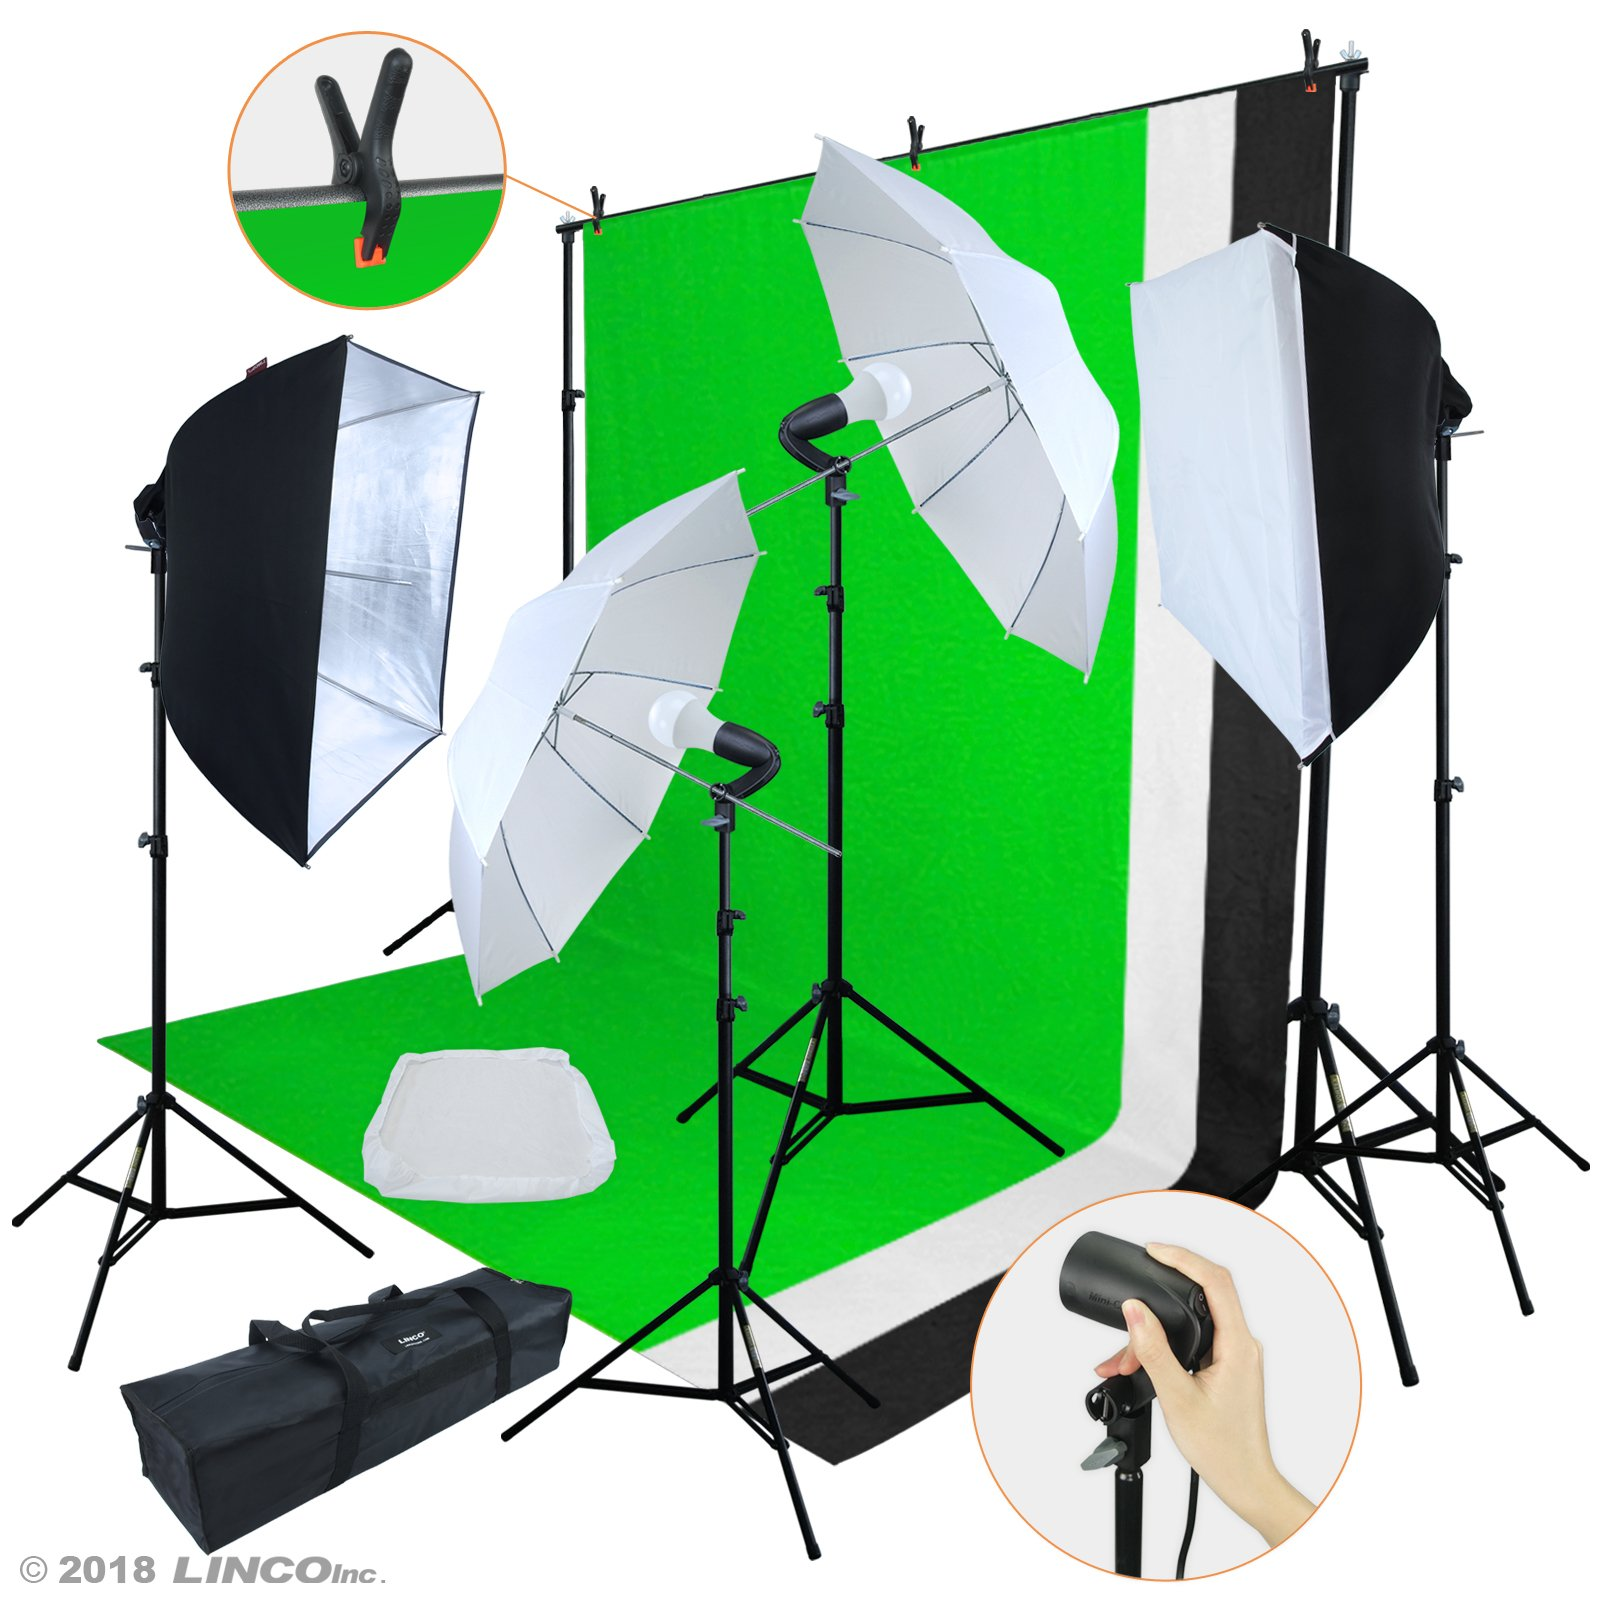 3 x Umbrella Light Kit 6.56ft x 6.56ft Background Support System with 3 Backdrops Safstar Photography Continuous Lighting Umbrellas Kits for Product Portrait and Video Shoot